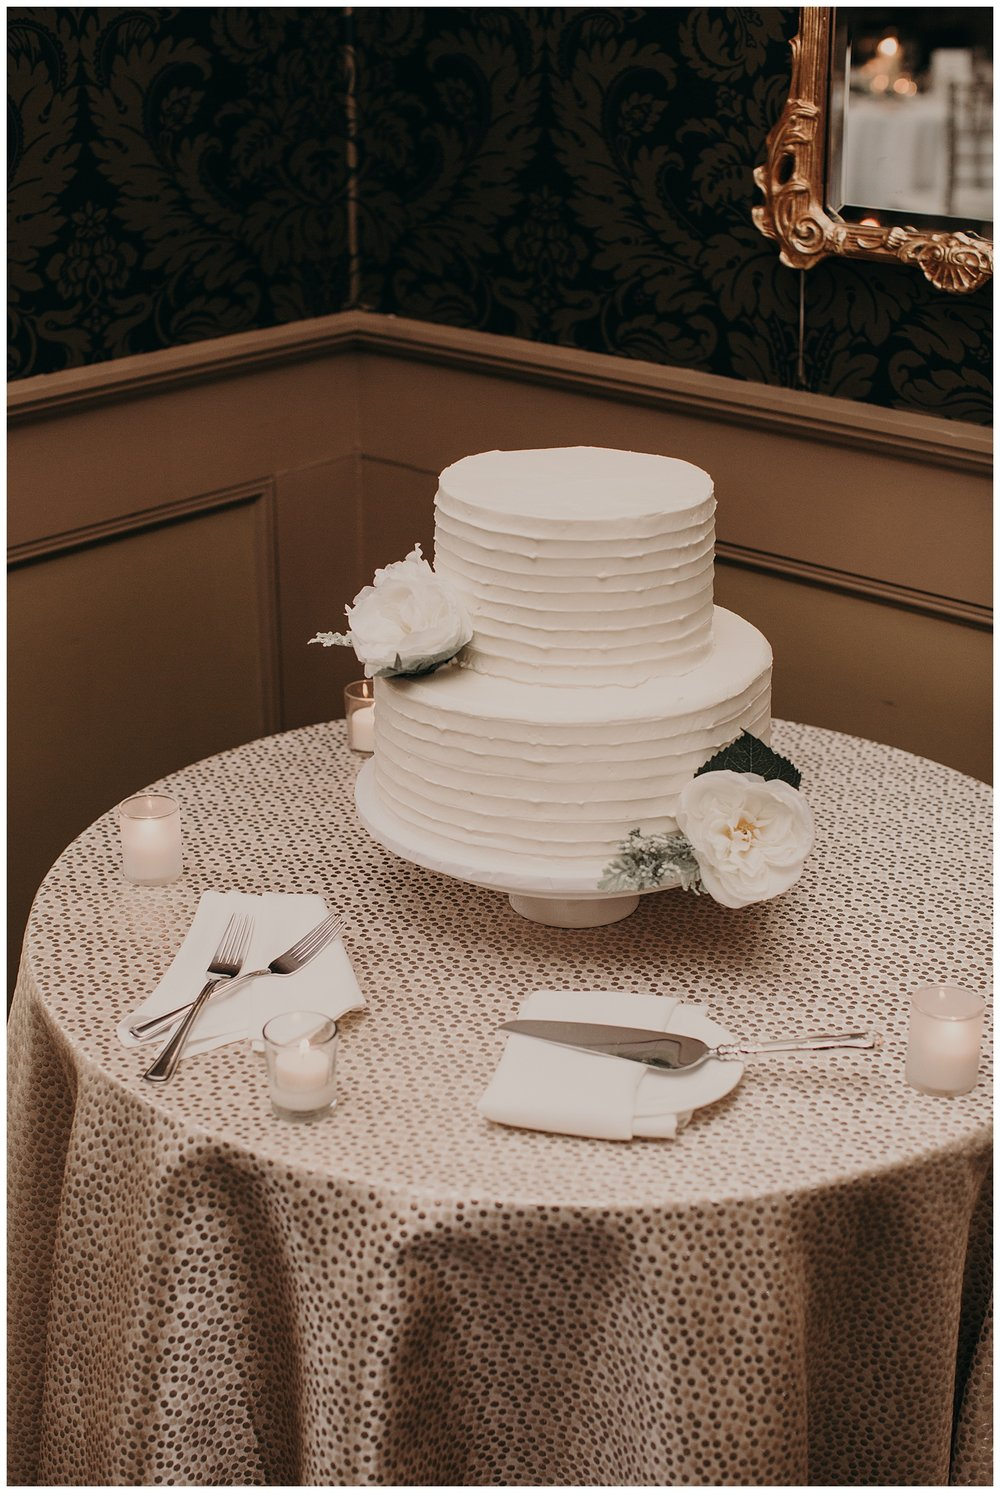 Mike_Kelly_Hotel_Viking_Newport_Rhode_Island_Wedding_022.jpeg